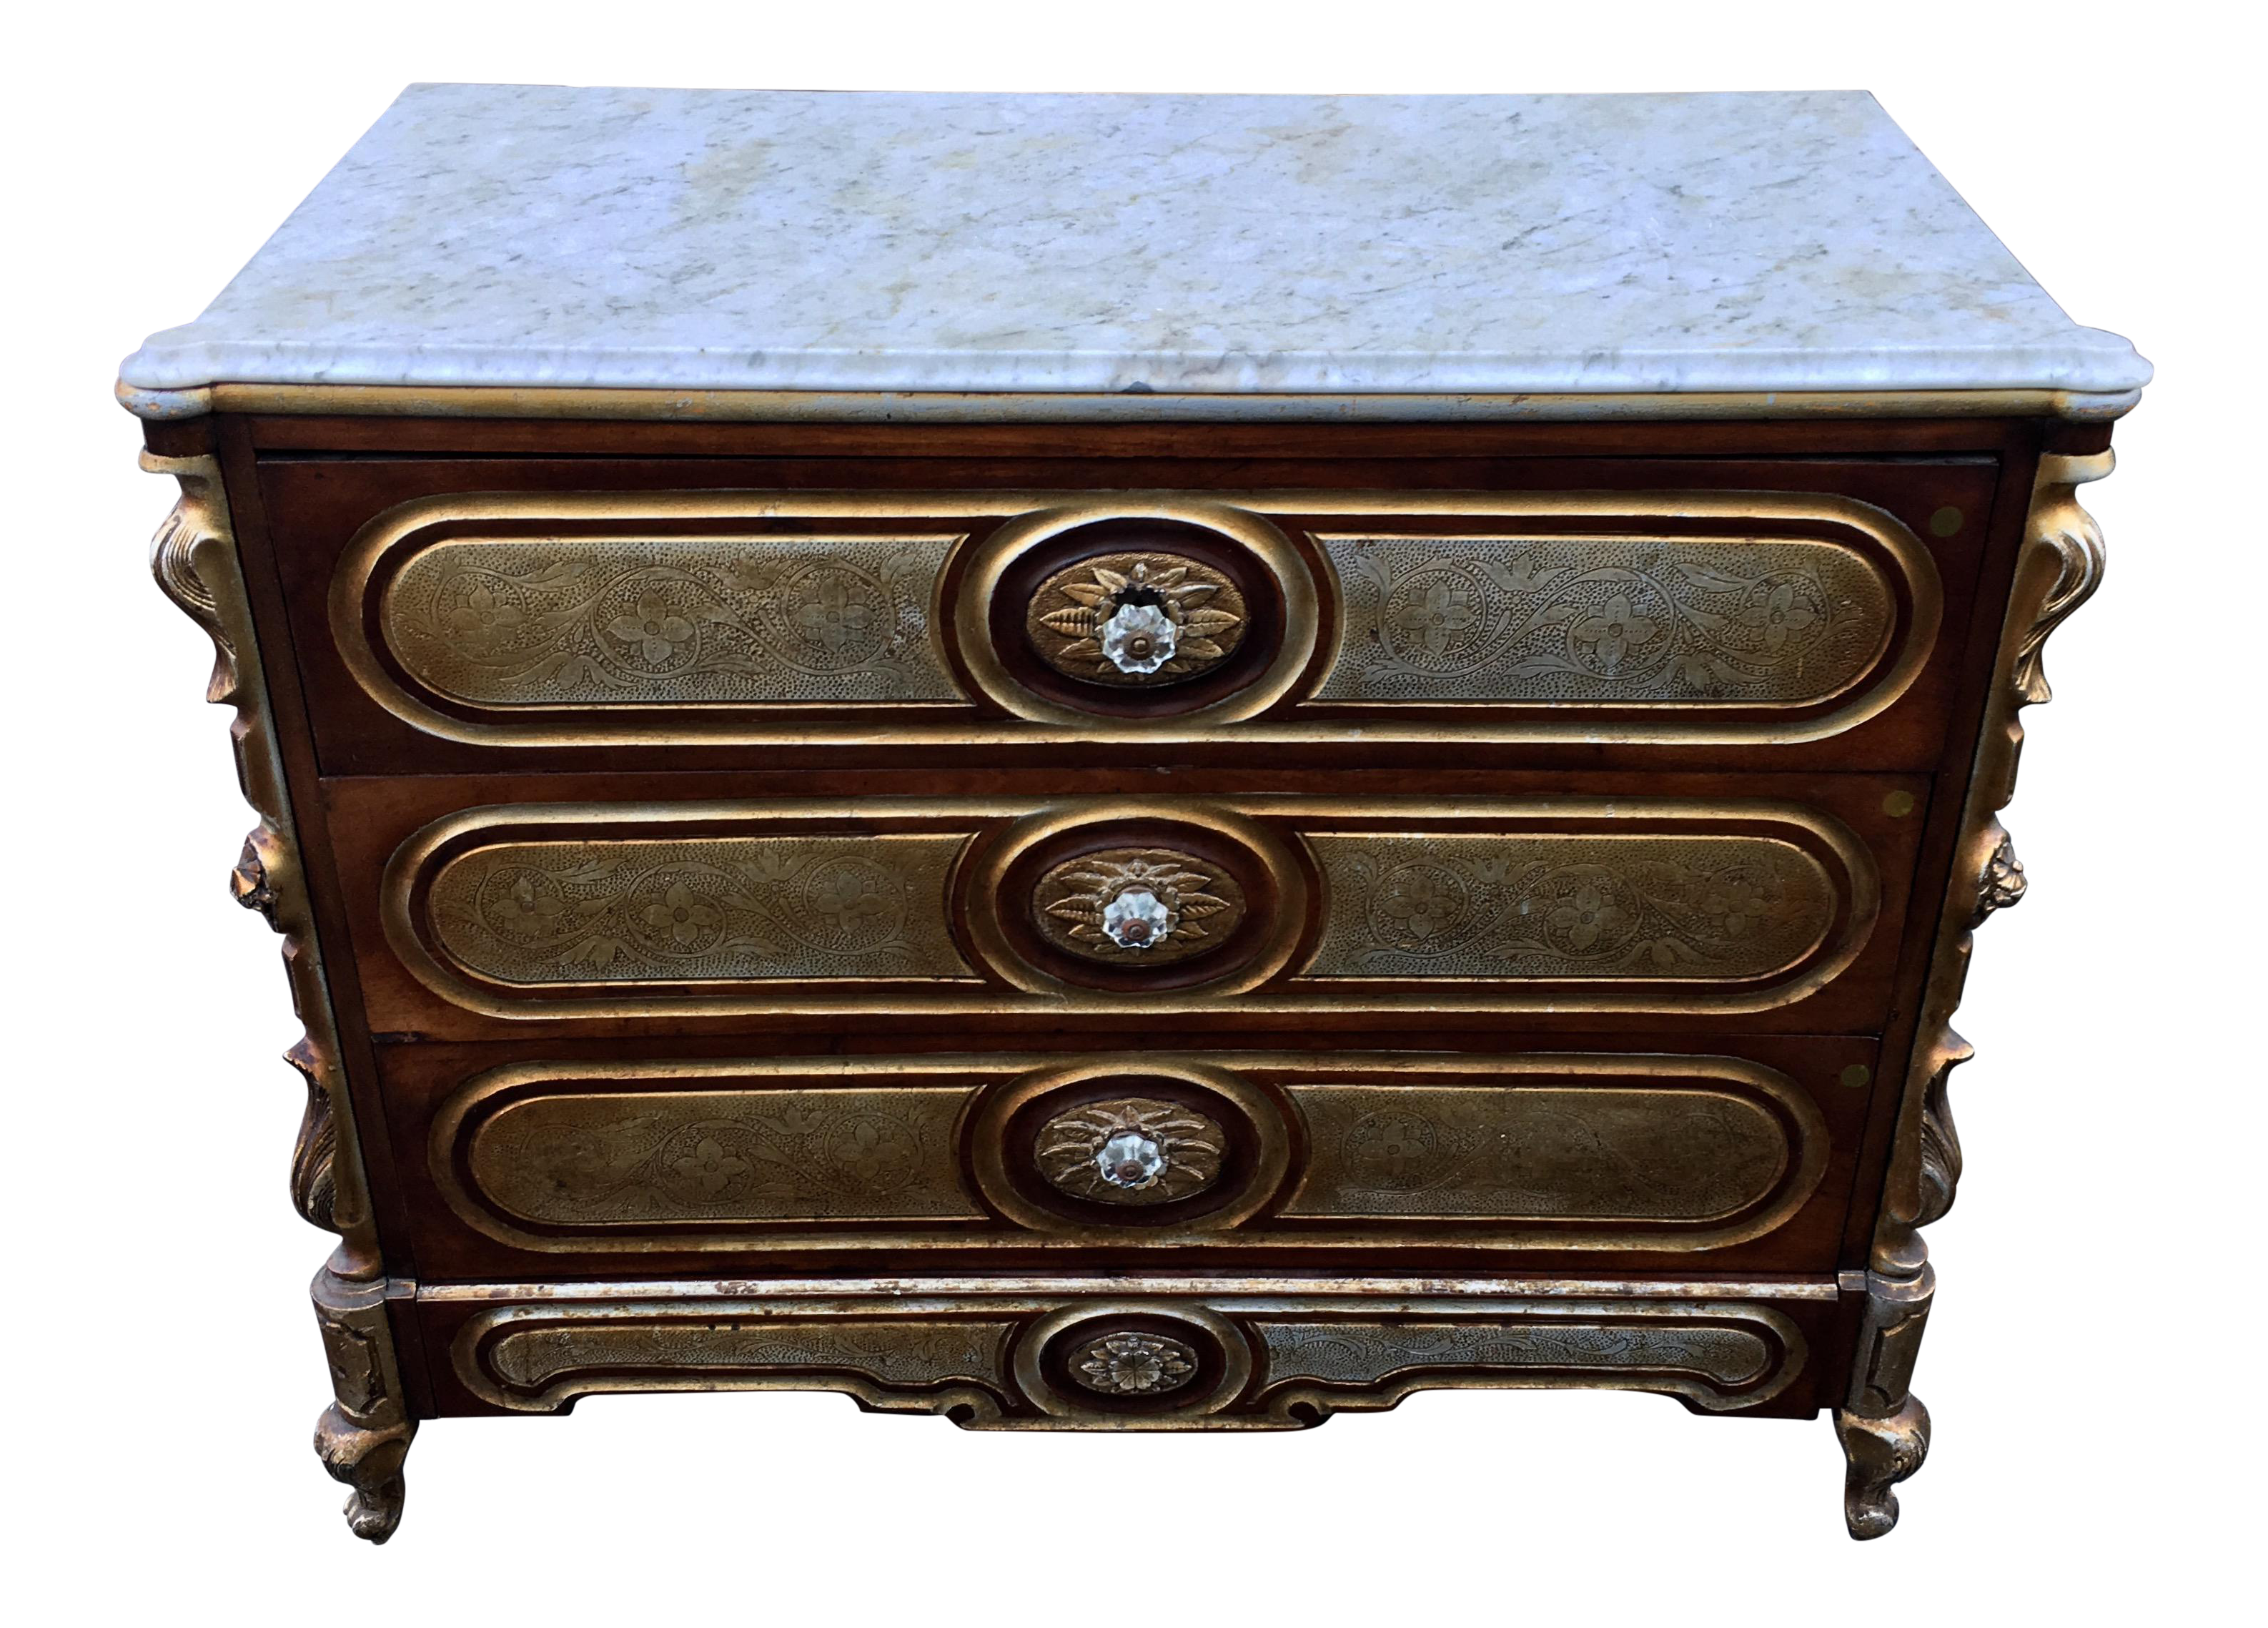 Unusual antique baroque style chest of drawers commode chairish - Commode style baroque ...